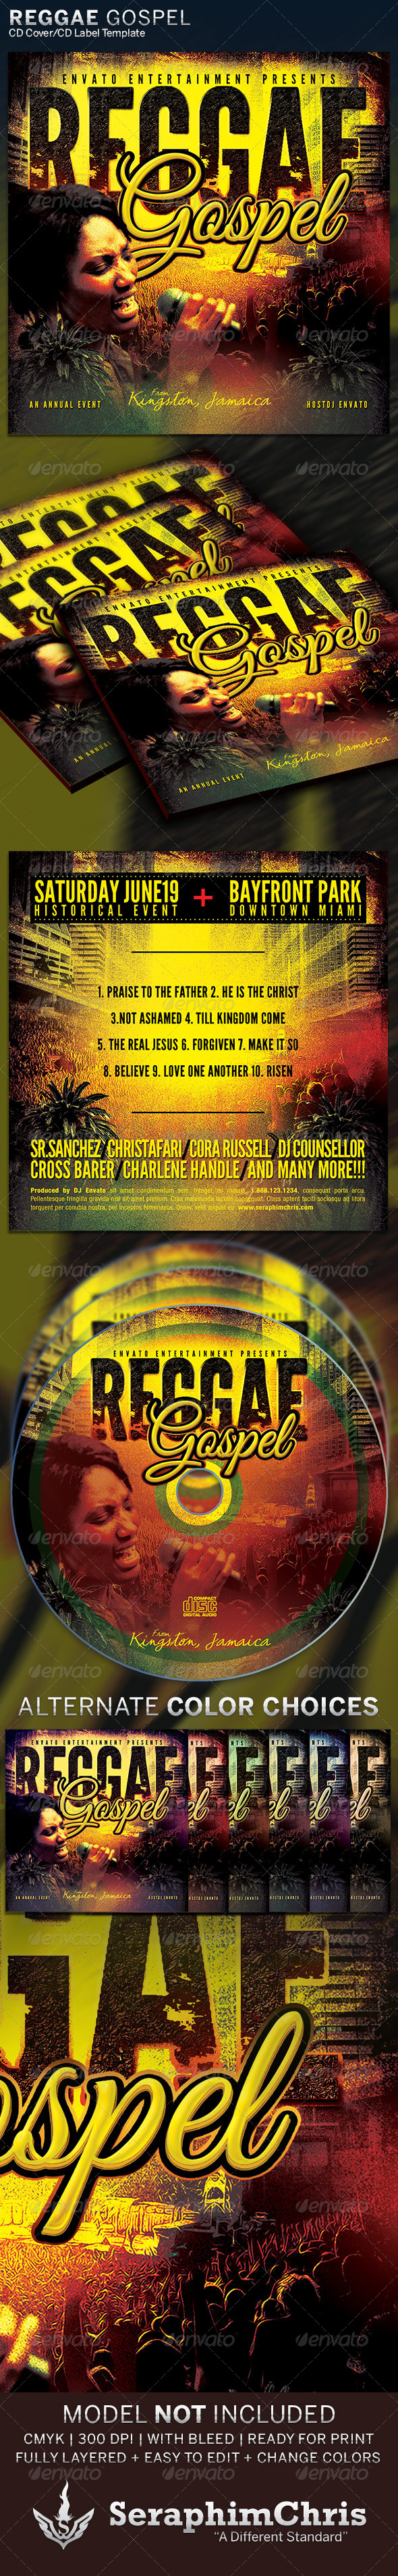 Reggae Gospel : CD Cover Artwork Template - CD & DVD Artwork Print Templates